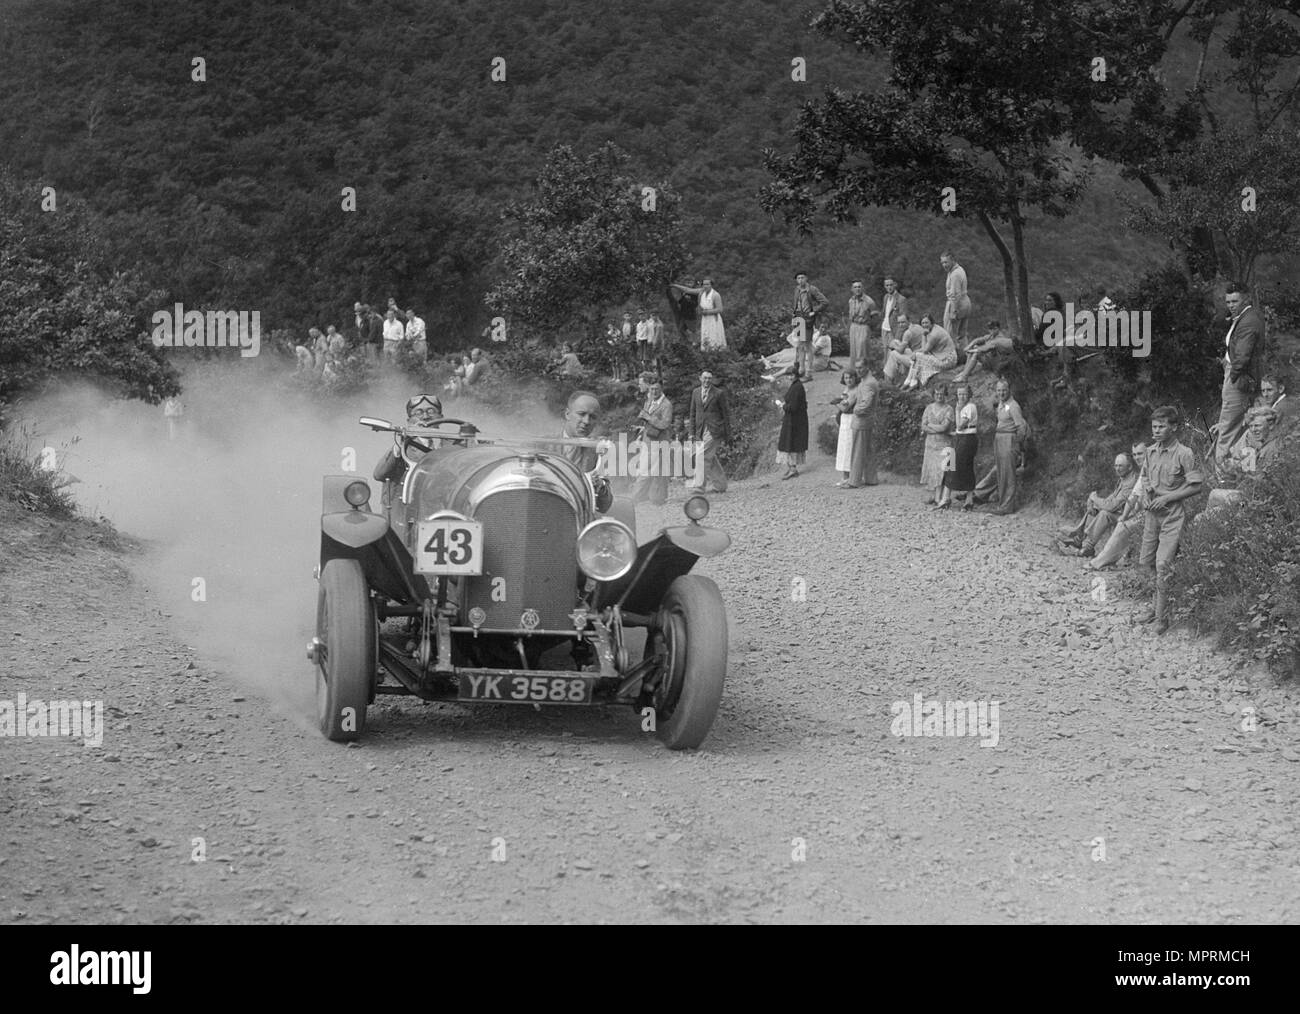 Bentley competing in the Barnstaple Trial, c1935. Artist: Bill Brunell. - Stock Image